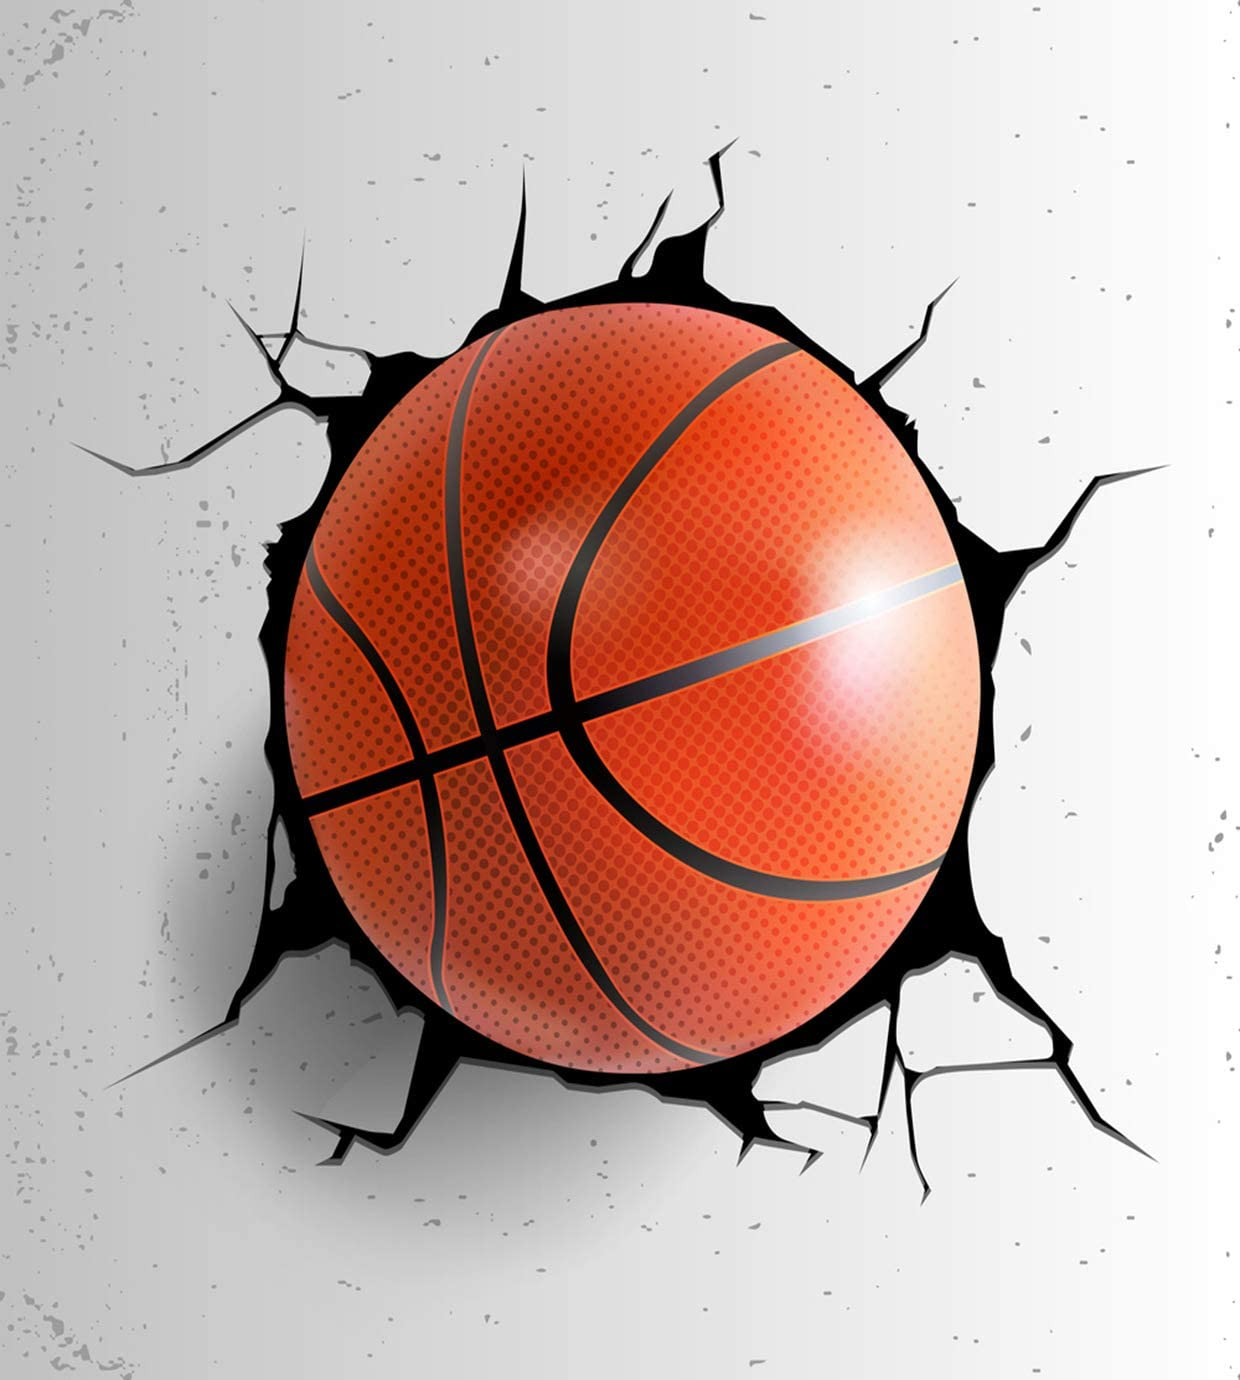 Eaiizer Ball Poster Sport Basketball Coming Cracked Wall Grunge Wall Art Print Artwork for Home Bedroom Office Dorm Decor Unframed Painting 24x36 Inches